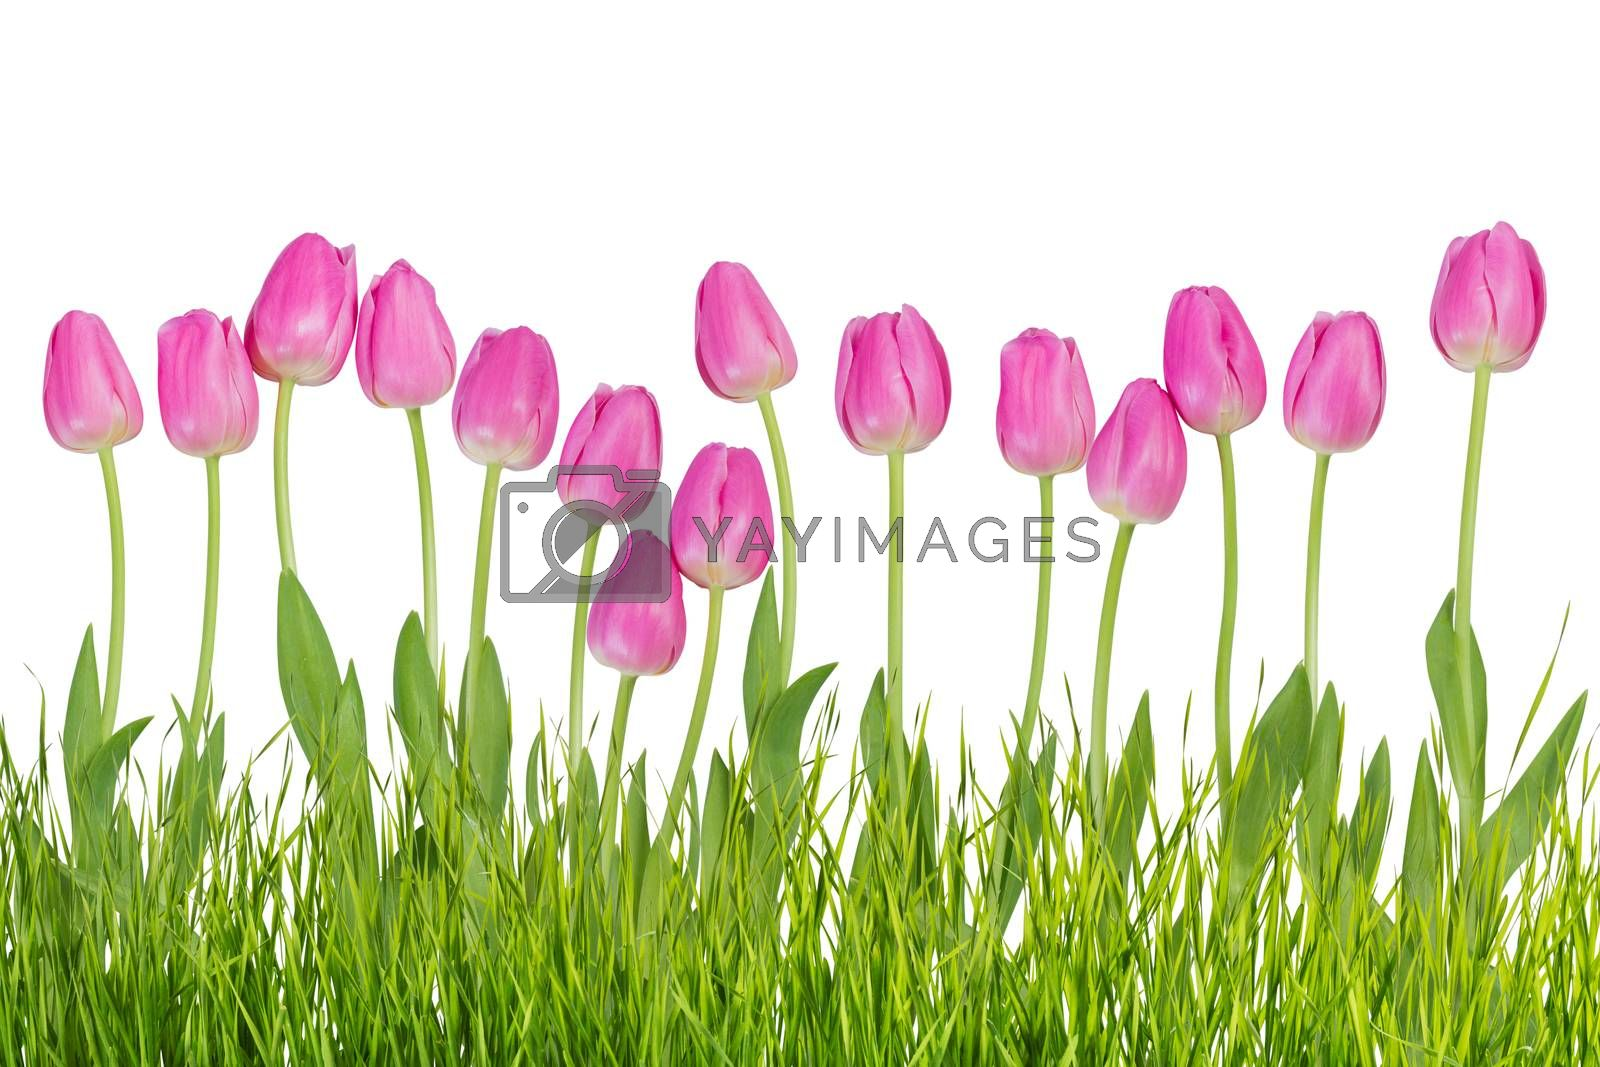 Pink tulip flowers with grass isolated on white background